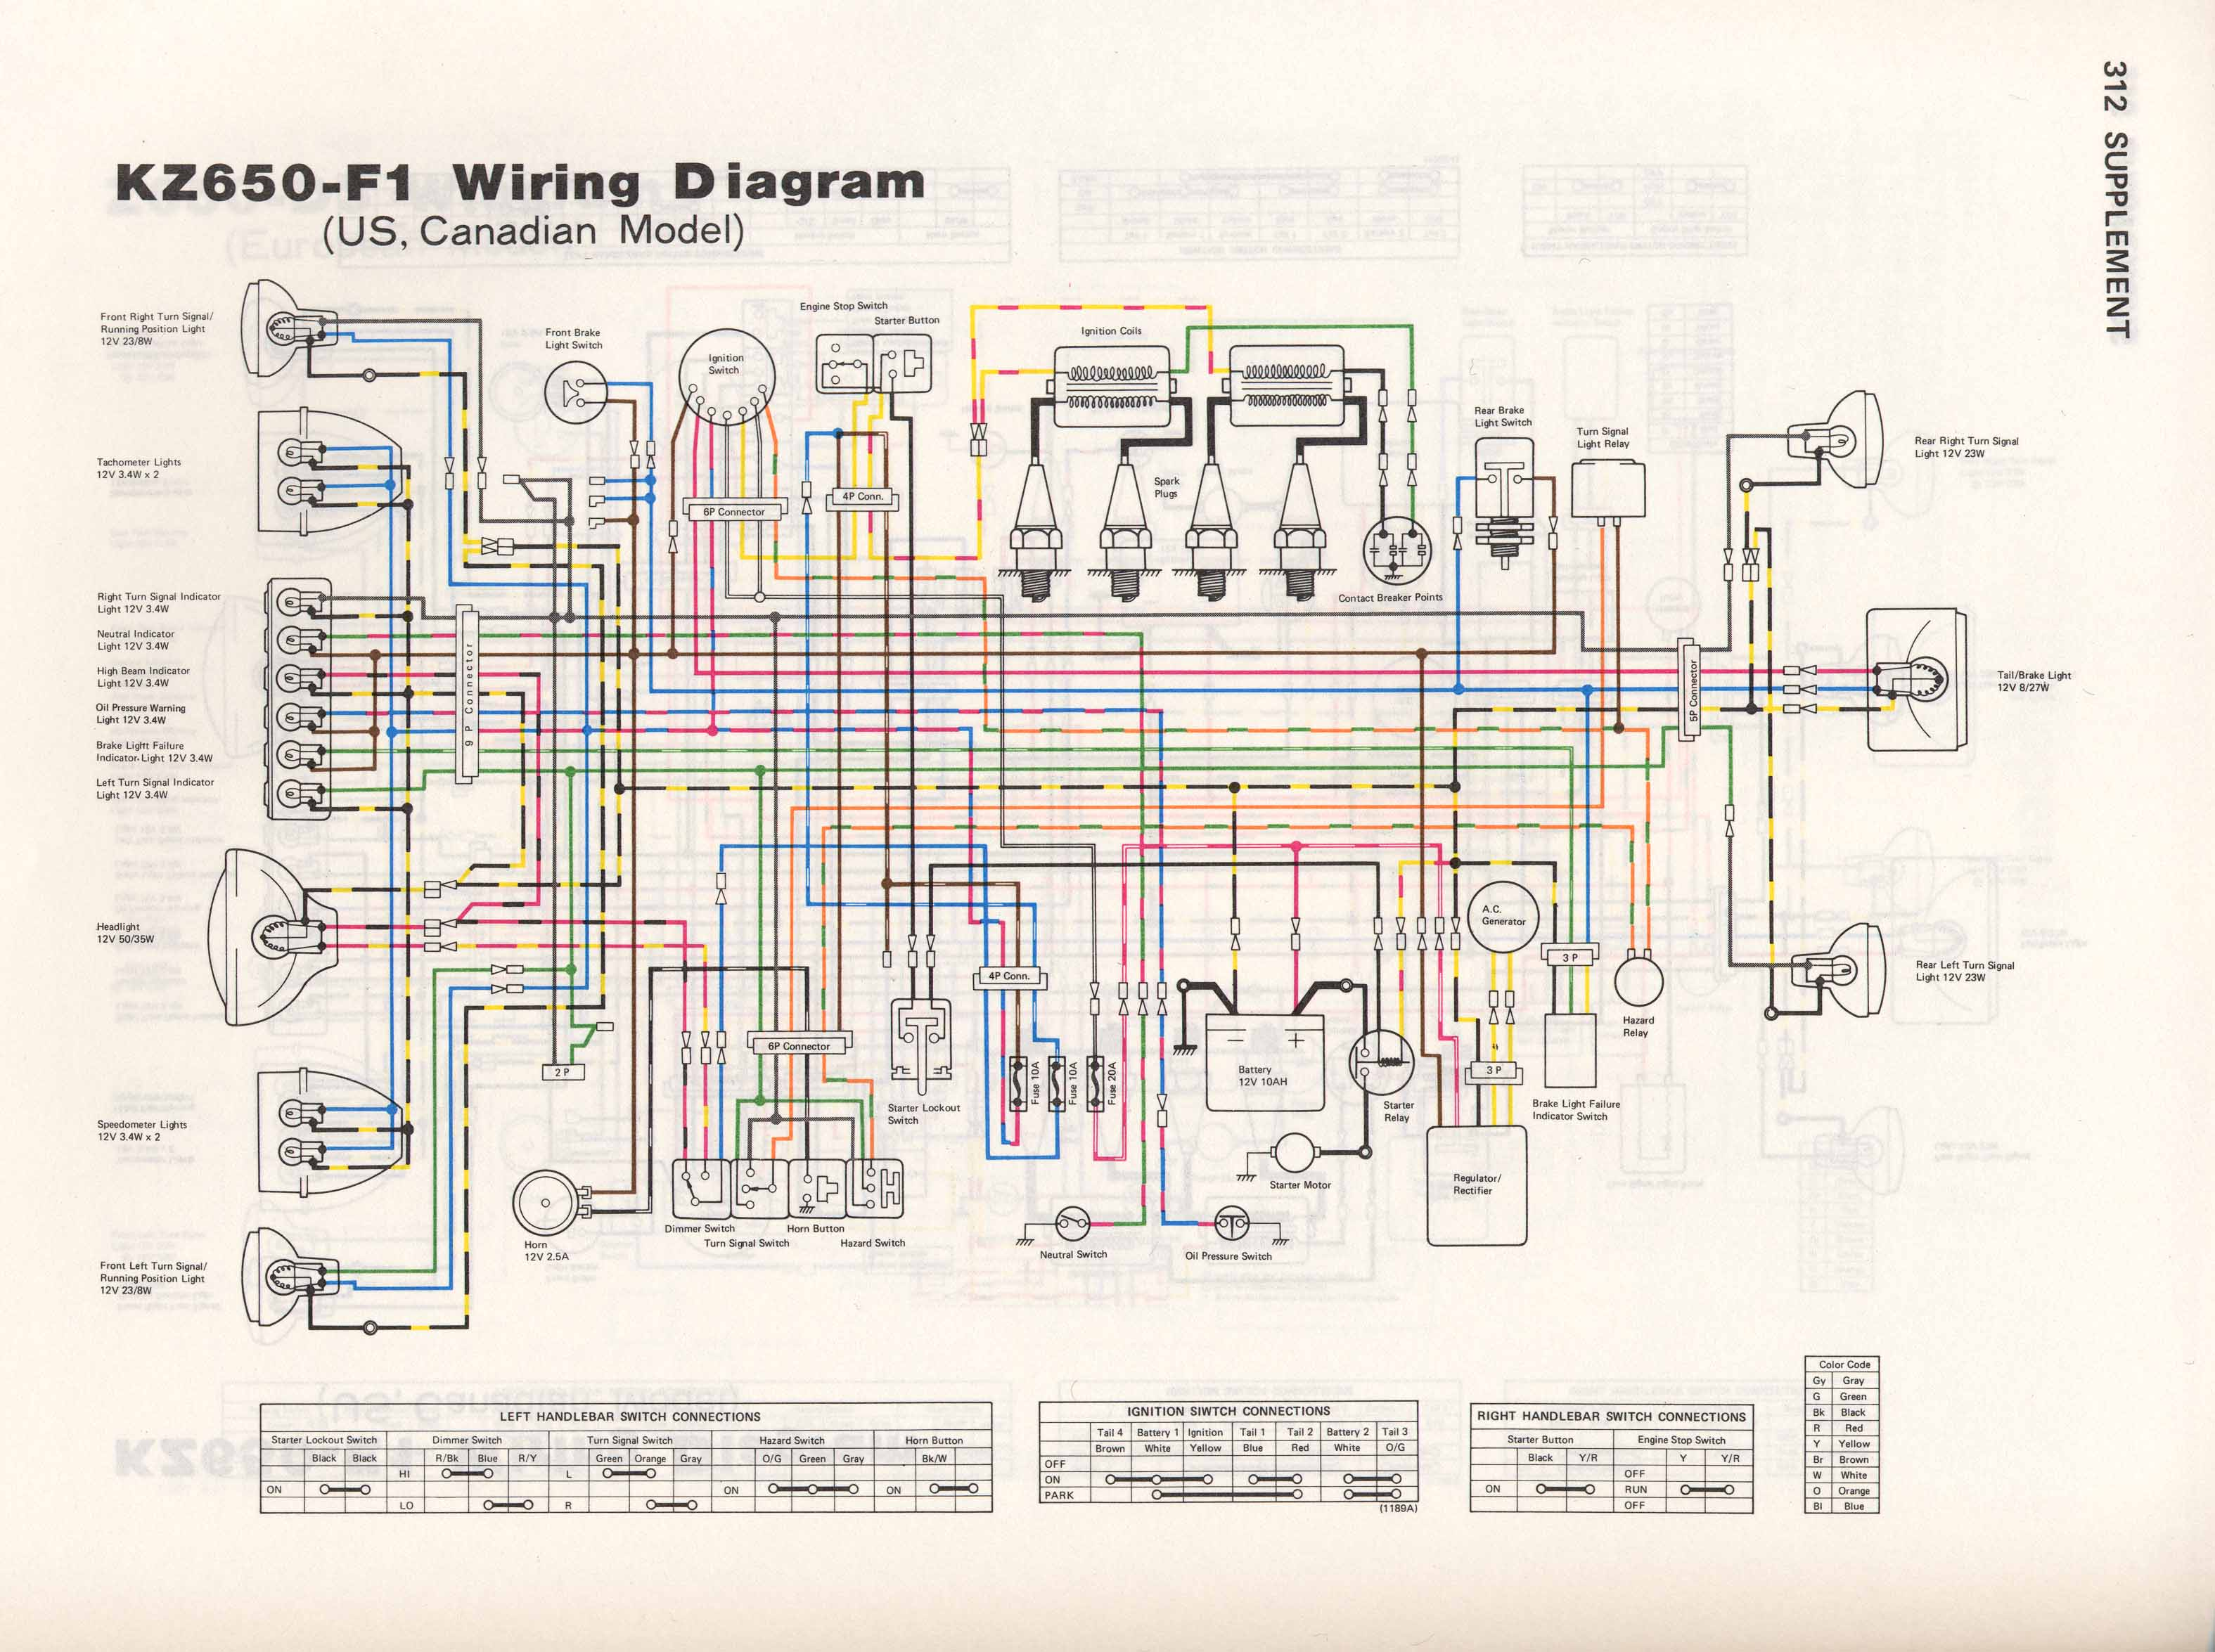 KZ650 F1 kz650 info wiring diagrams 1980 kawasaki kz440 wiring diagram at readyjetset.co